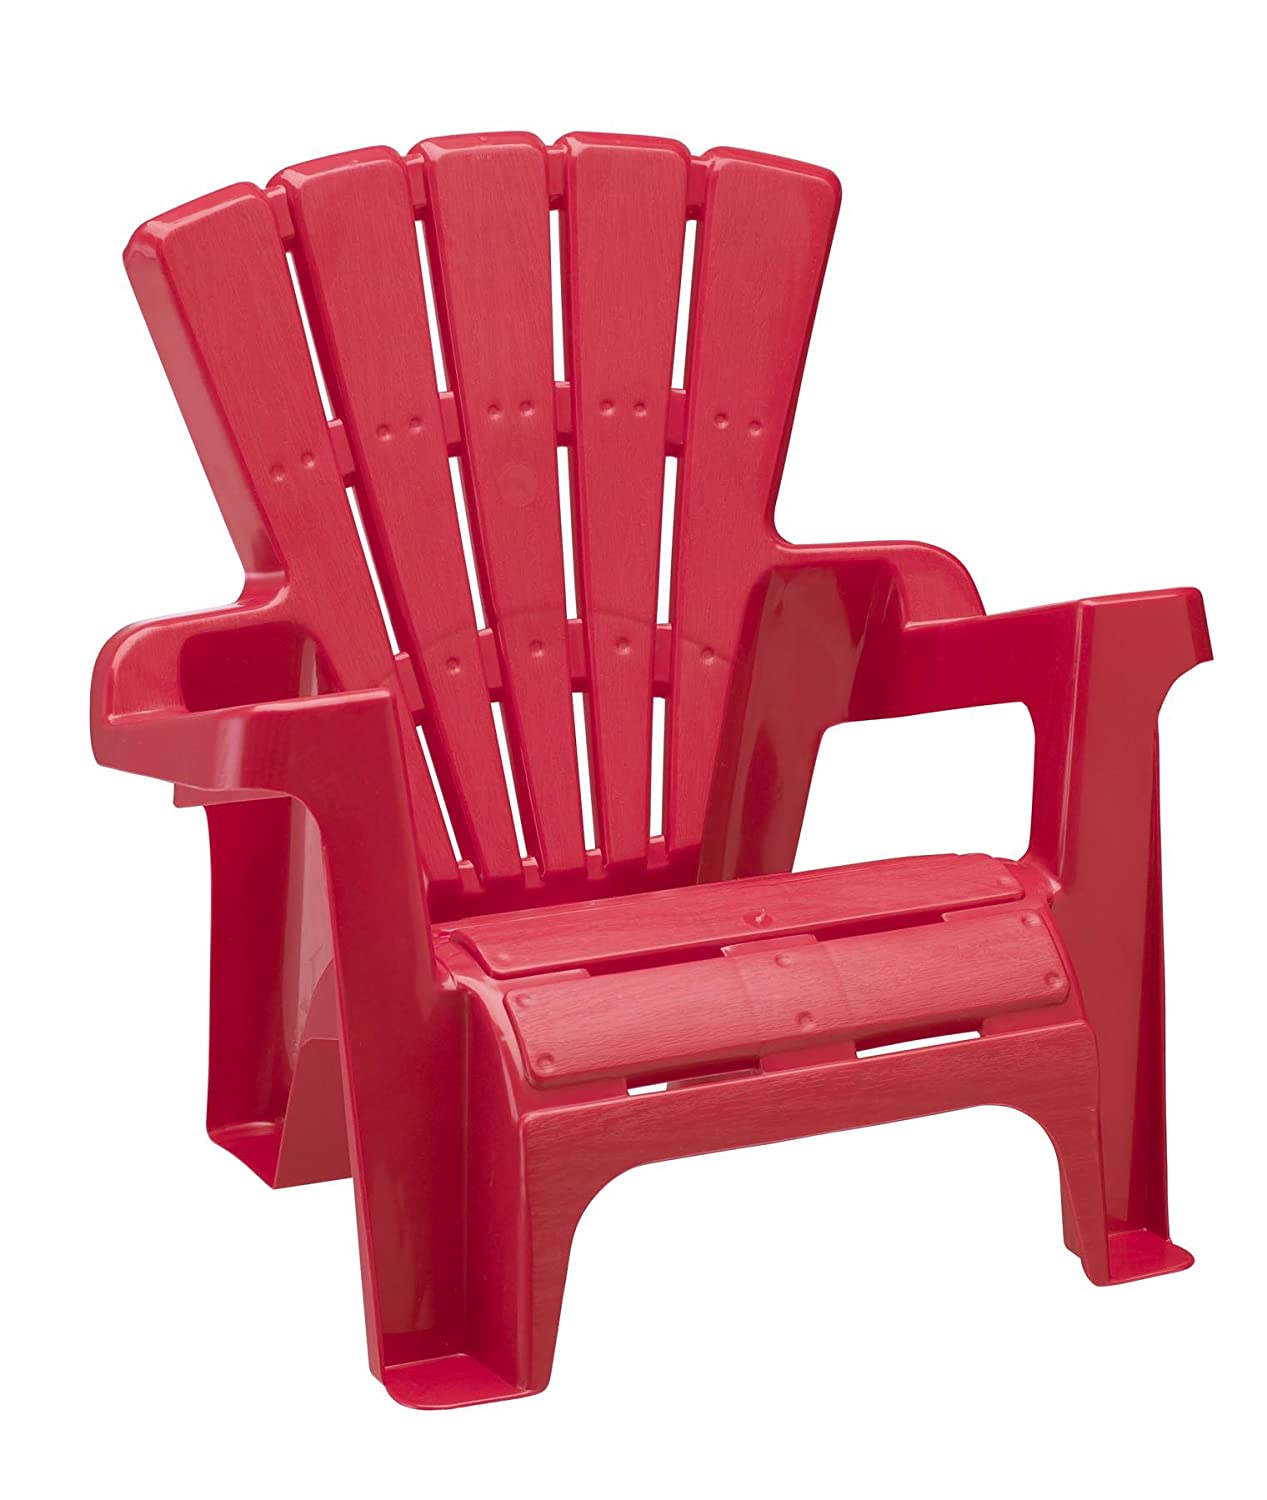 Brilliant American Plastic Toys Kids Red Adirondack Chair 6 Pack Andrewgaddart Wooden Chair Designs For Living Room Andrewgaddartcom